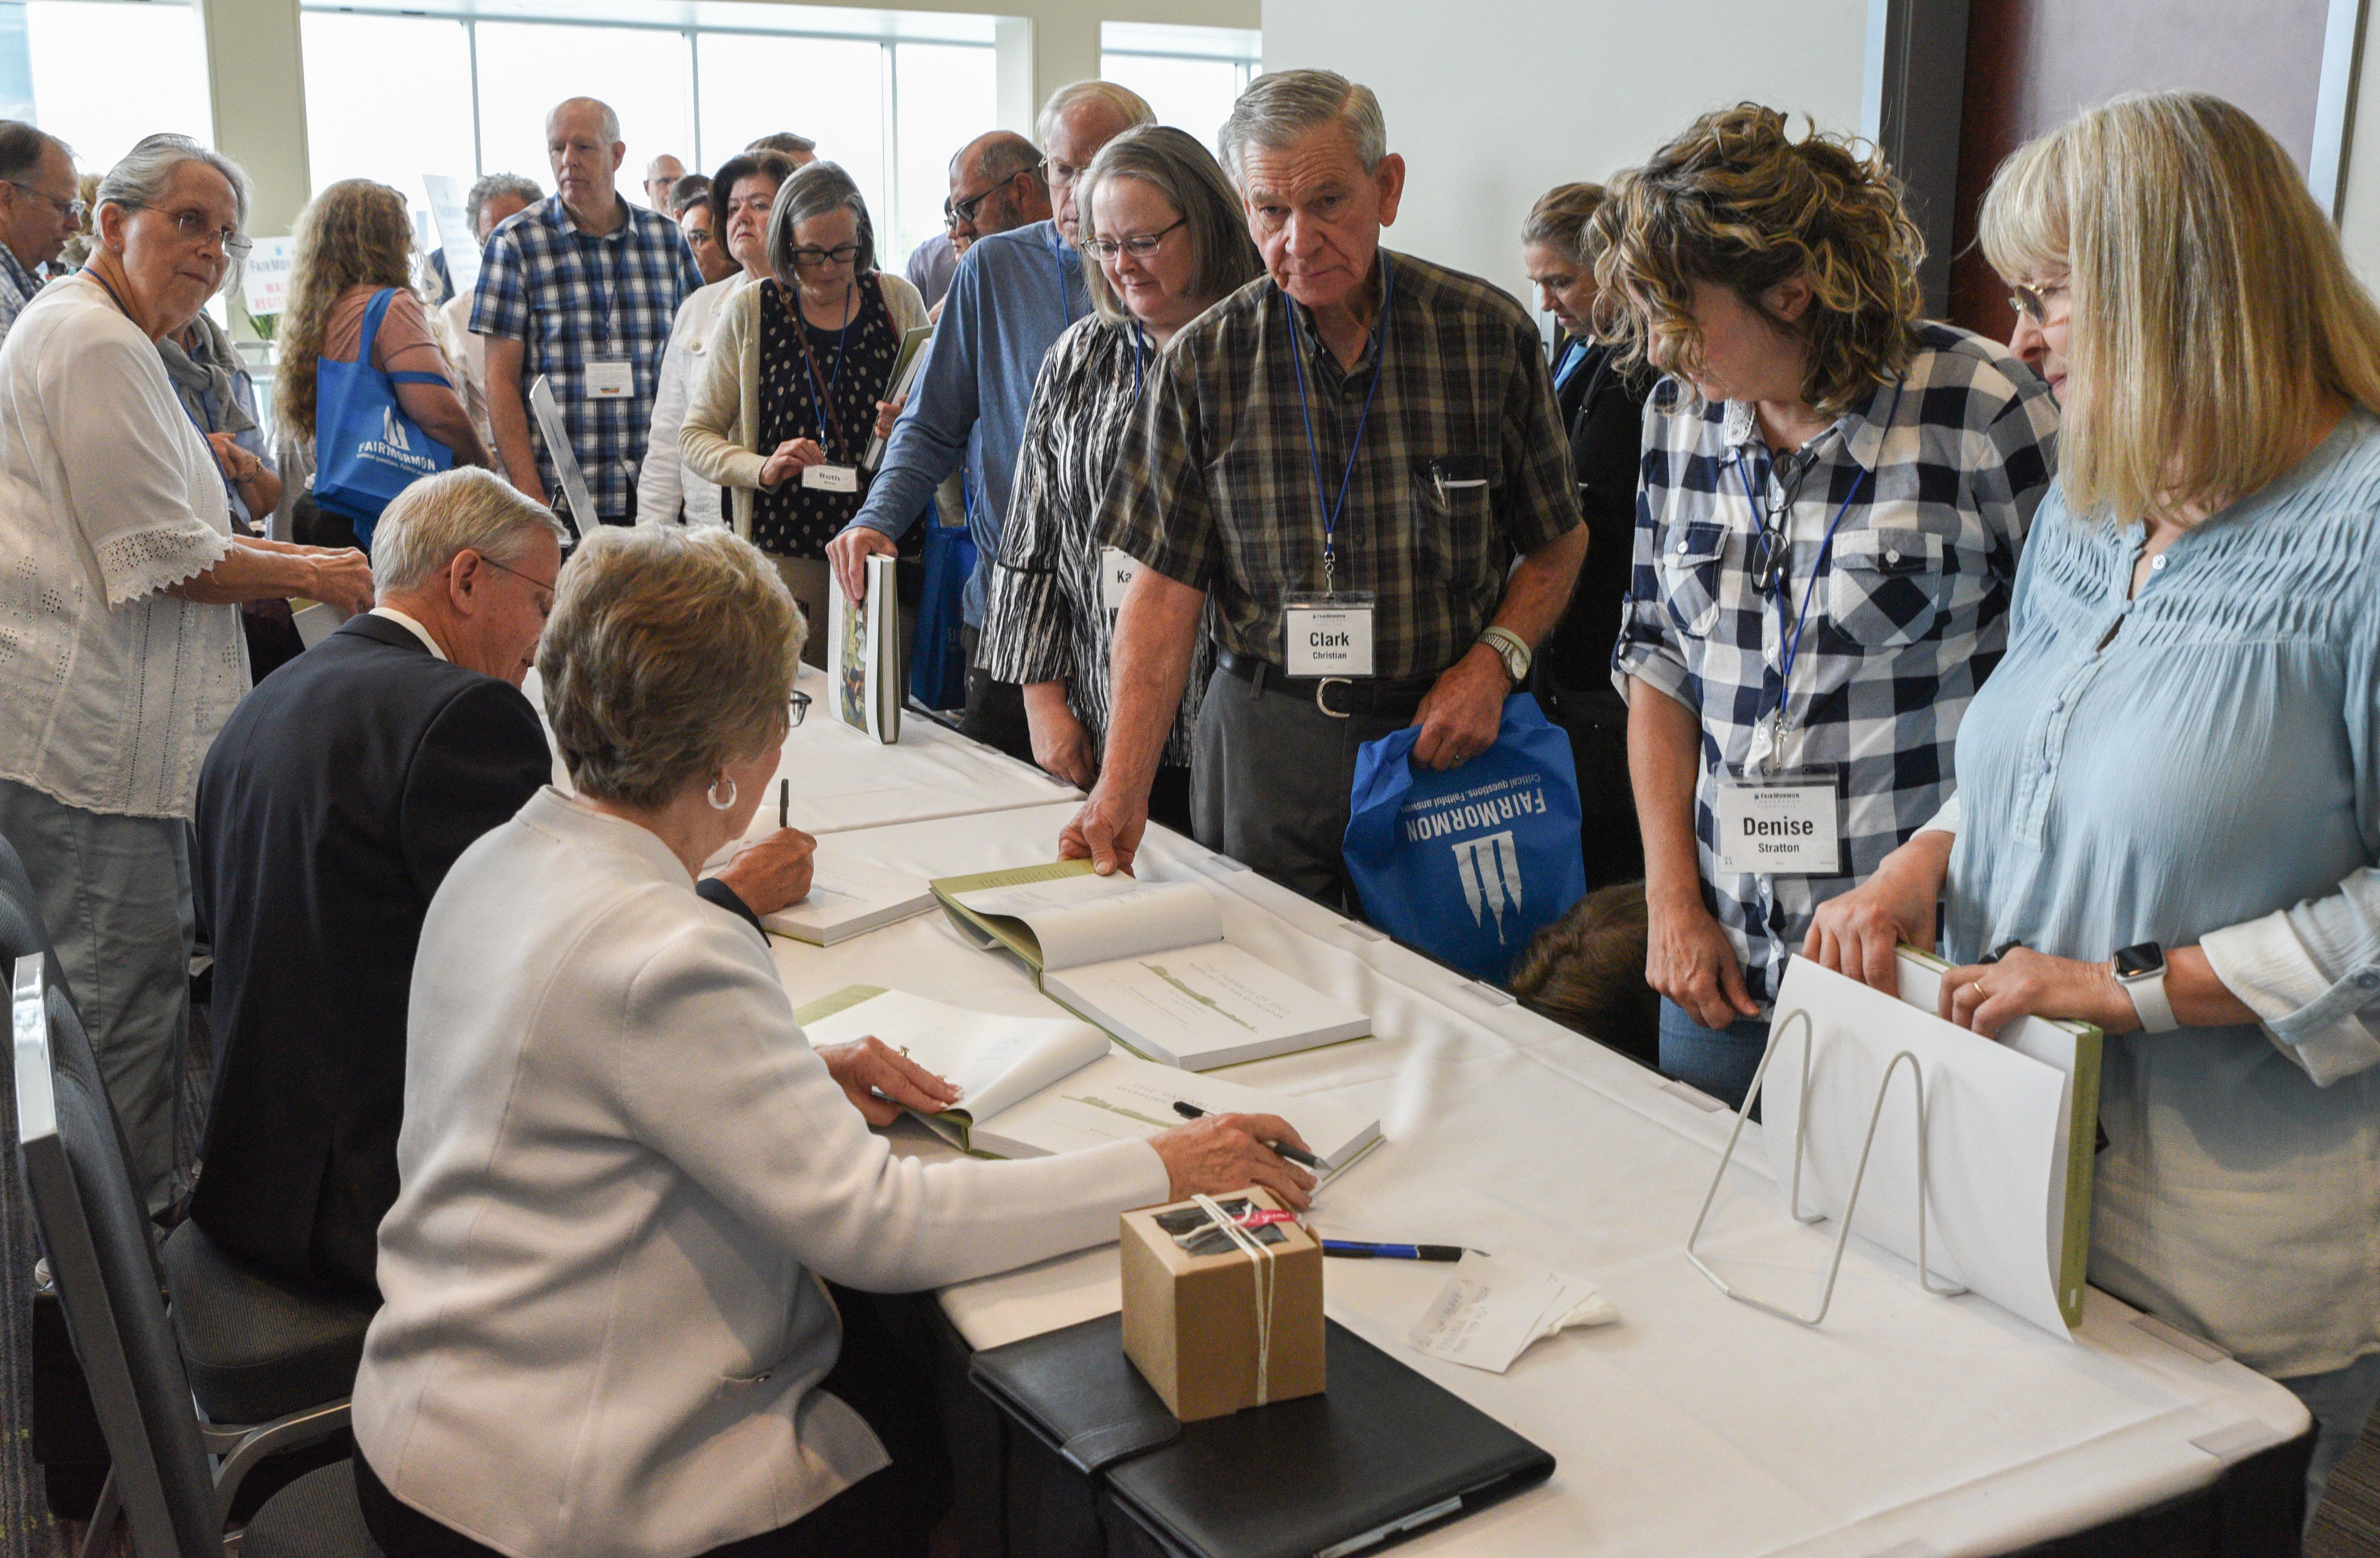 Attendees at the FairMormon conference on Friday, Aug. 9, 2019 at the Utah Valley Convention Center in Provo, Utah stand in like for author signings at the pop-up bookshop between conference sessions.